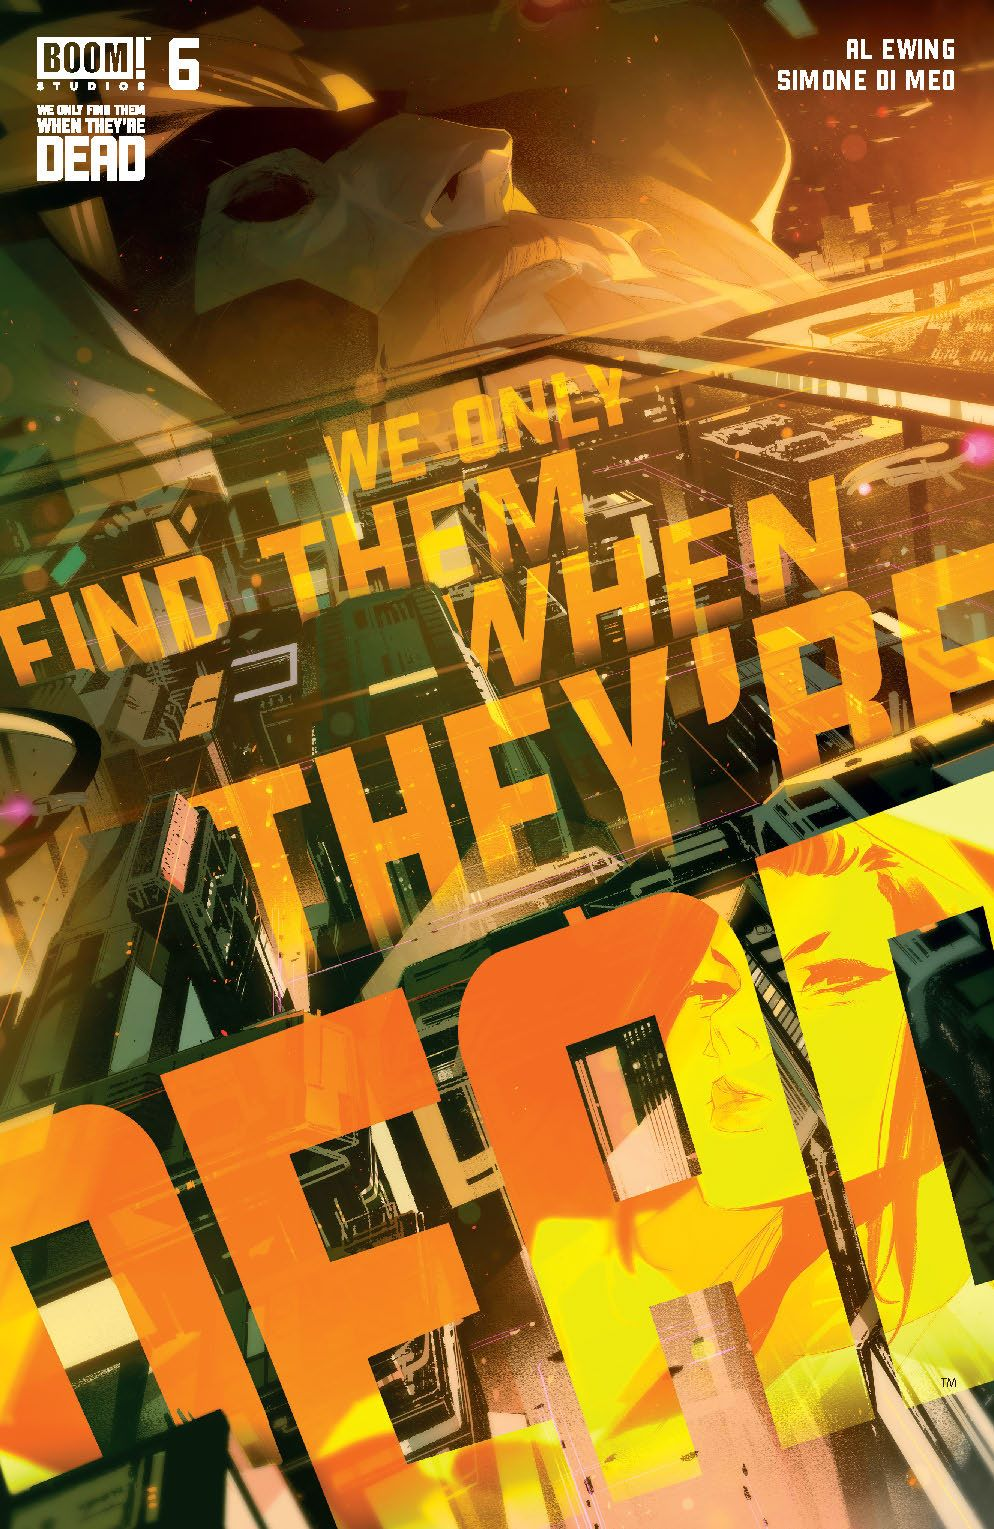 WeOnlyFindThem_006_Cover_A_Main ComicList: BOOM! Studios New Releases for 05/19/2021